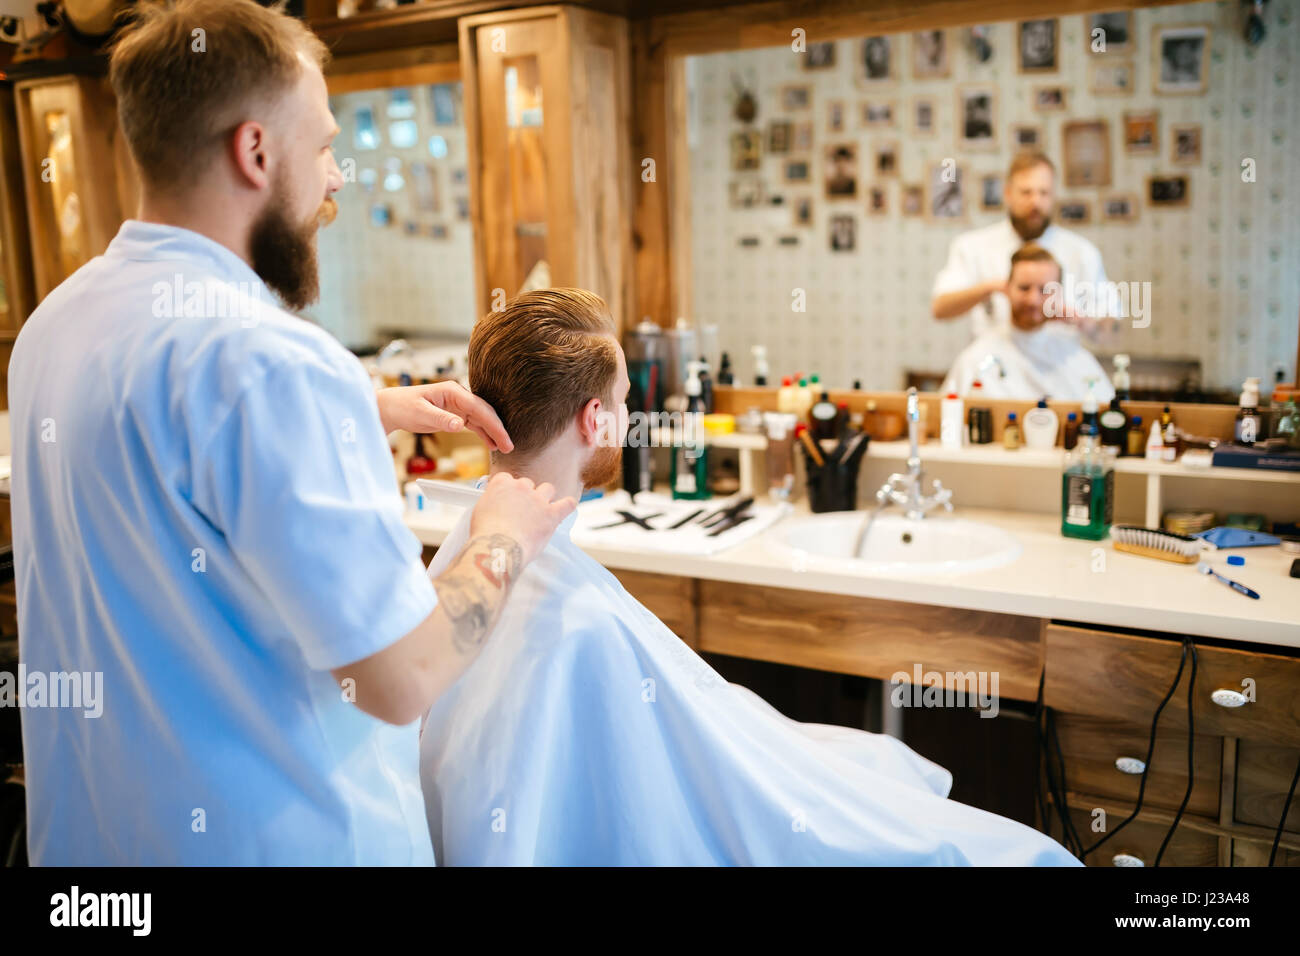 Combing of hair and styling in barber shop - Stock Image